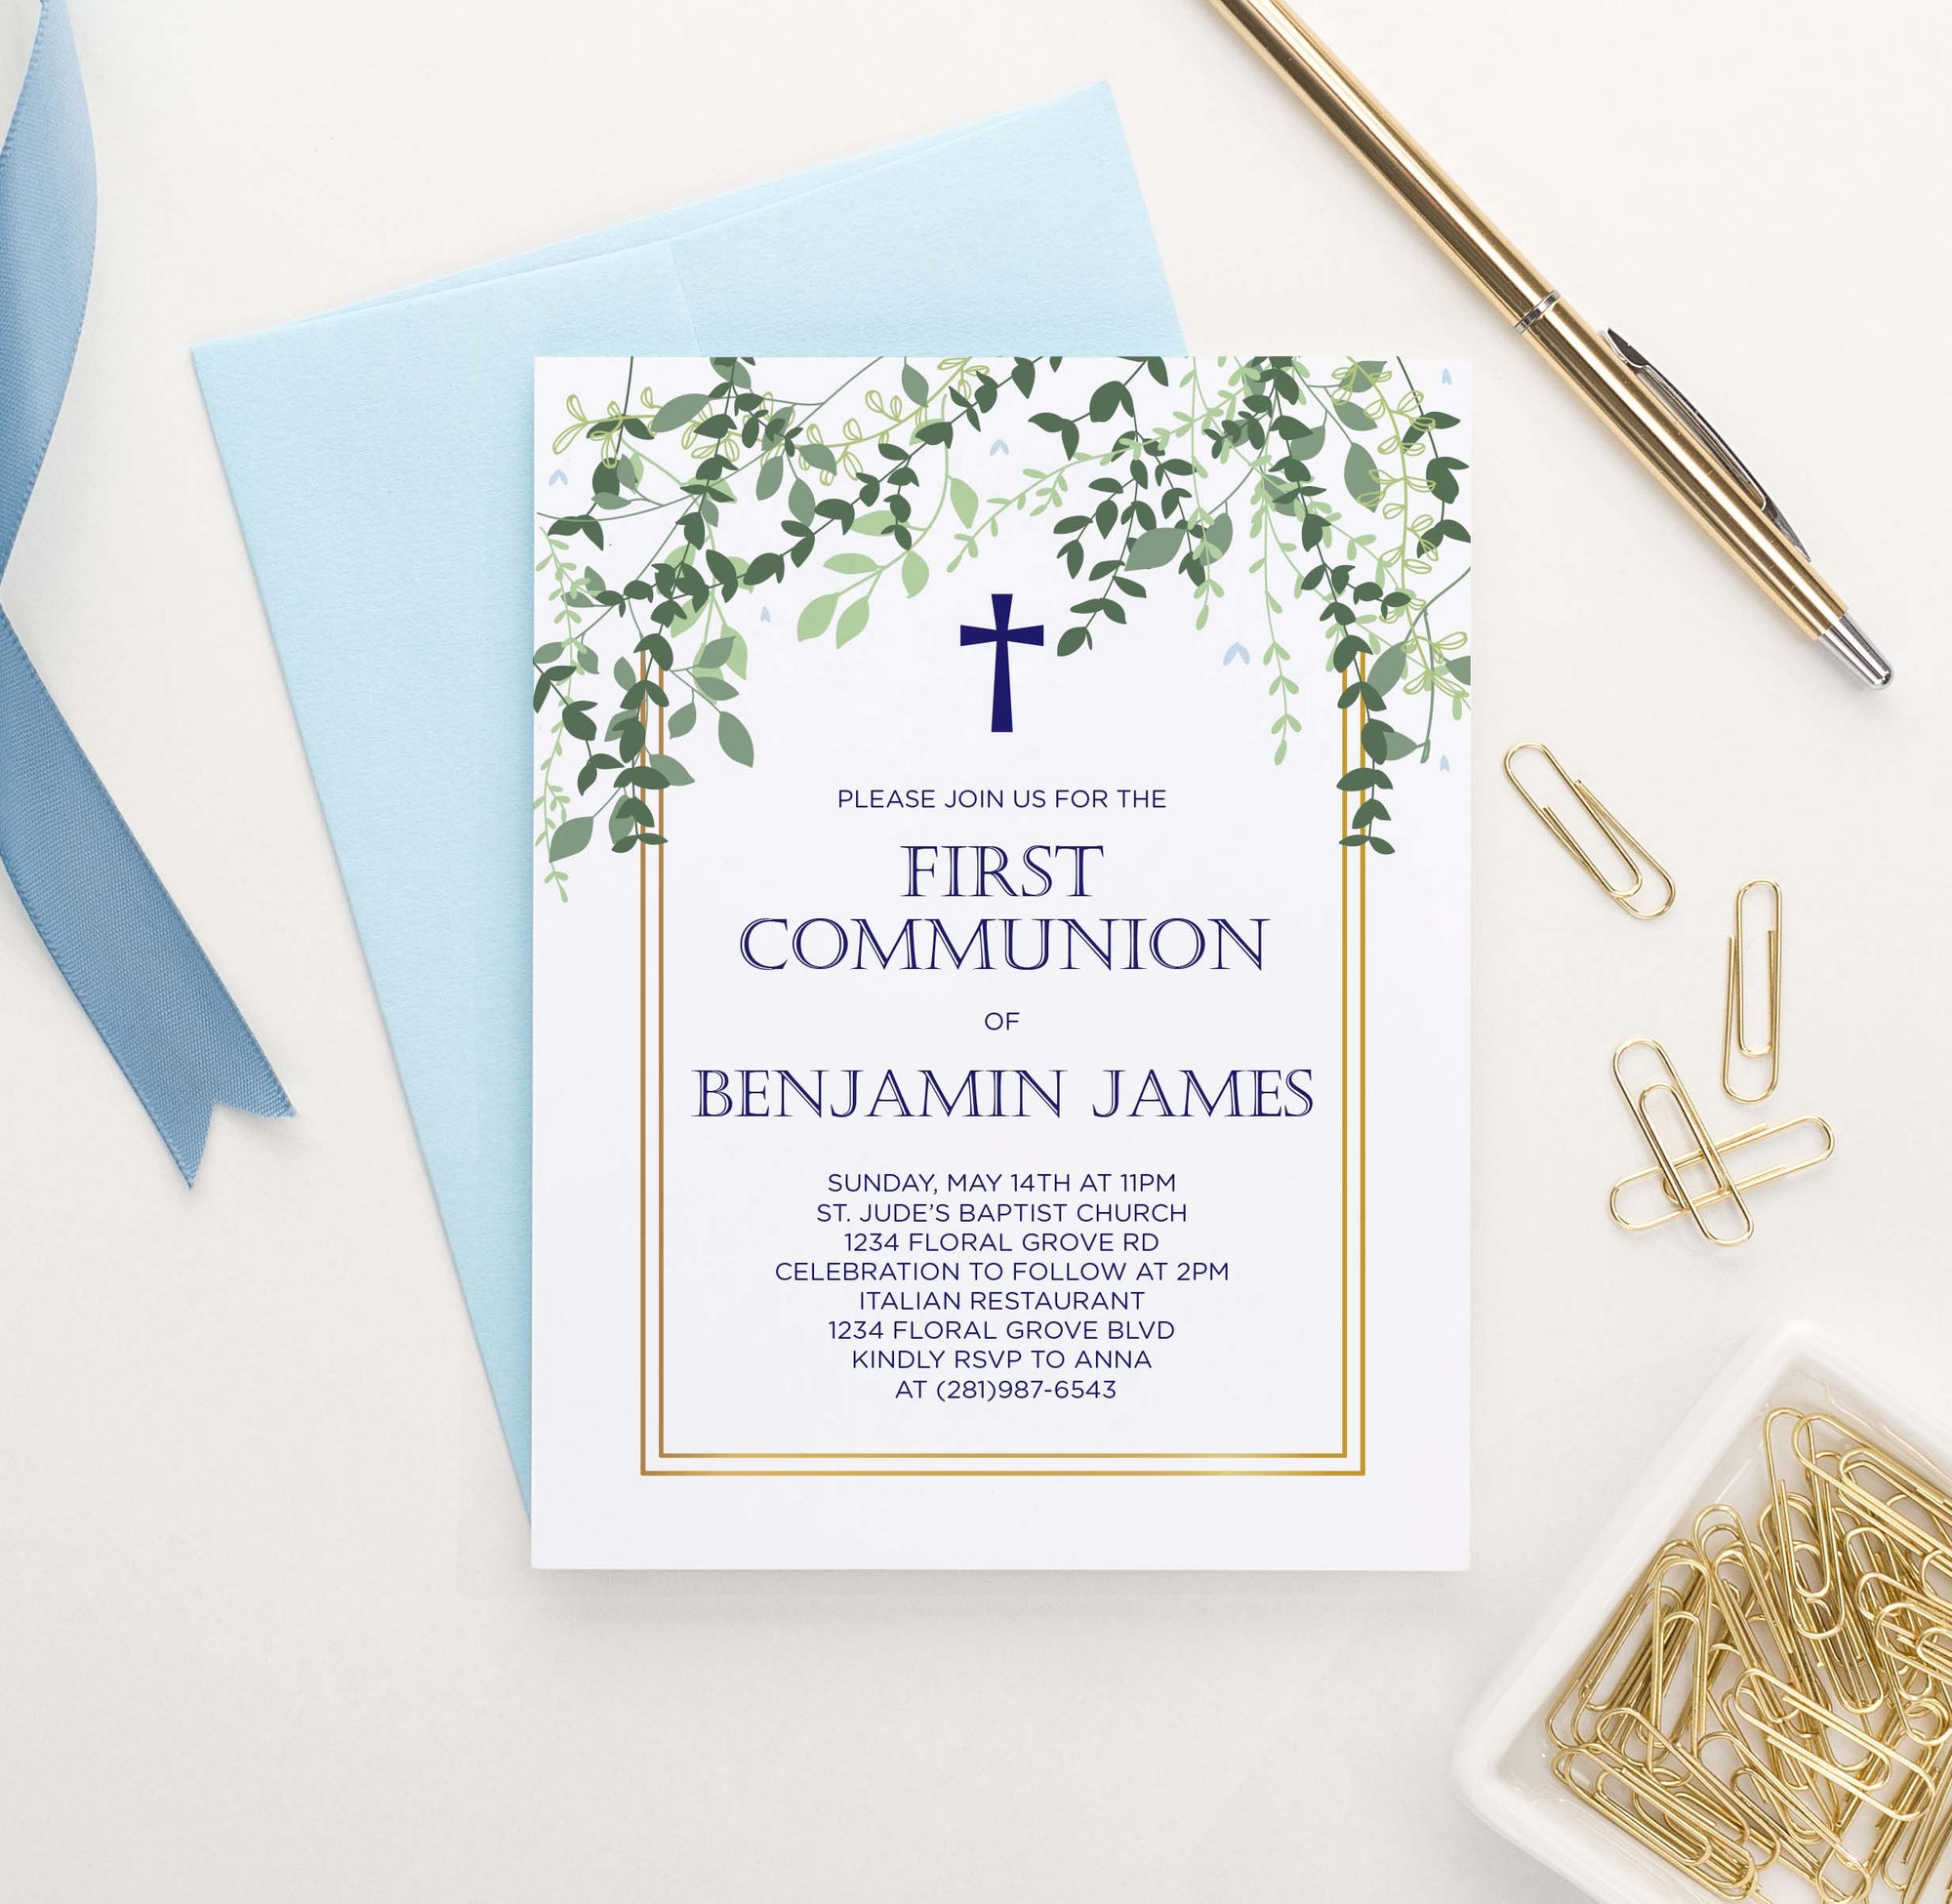 FCI023 elegant greenery and gold frame first communion invite set leaves vines 1